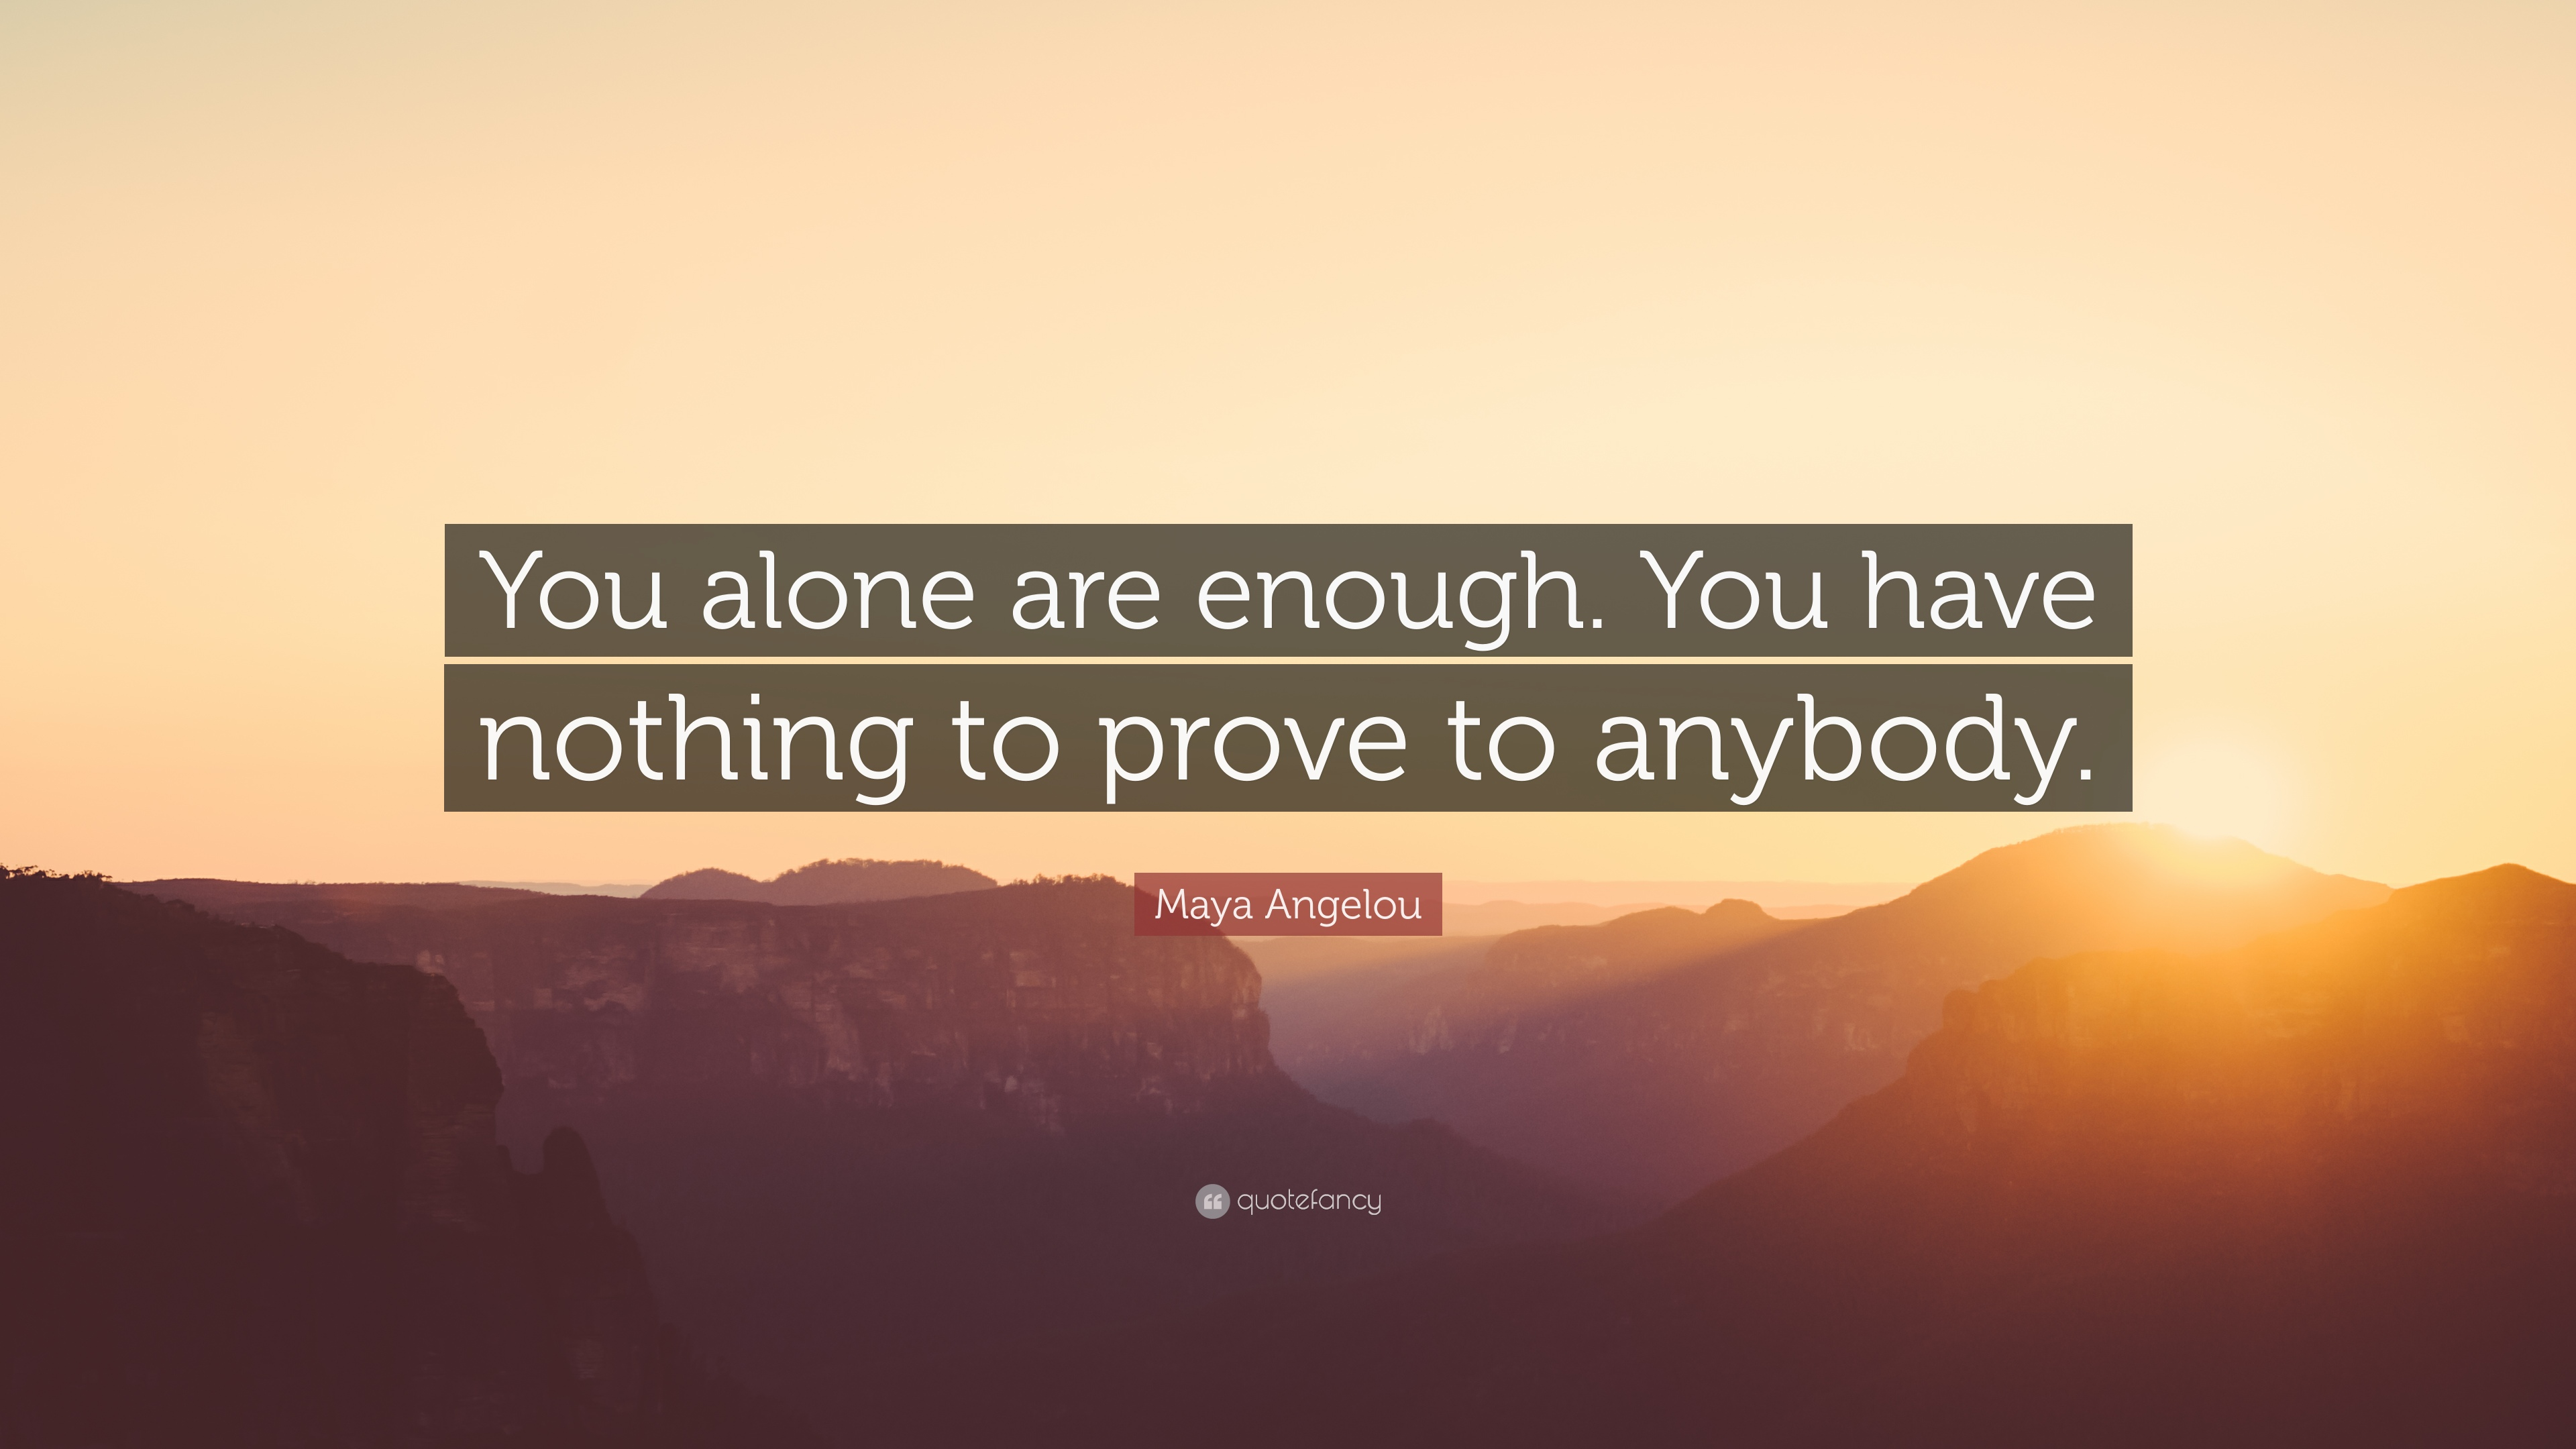 354963-Maya-Angelou-Quote-You-alone-are-enough-You-have-nothing-to-prove.jpg